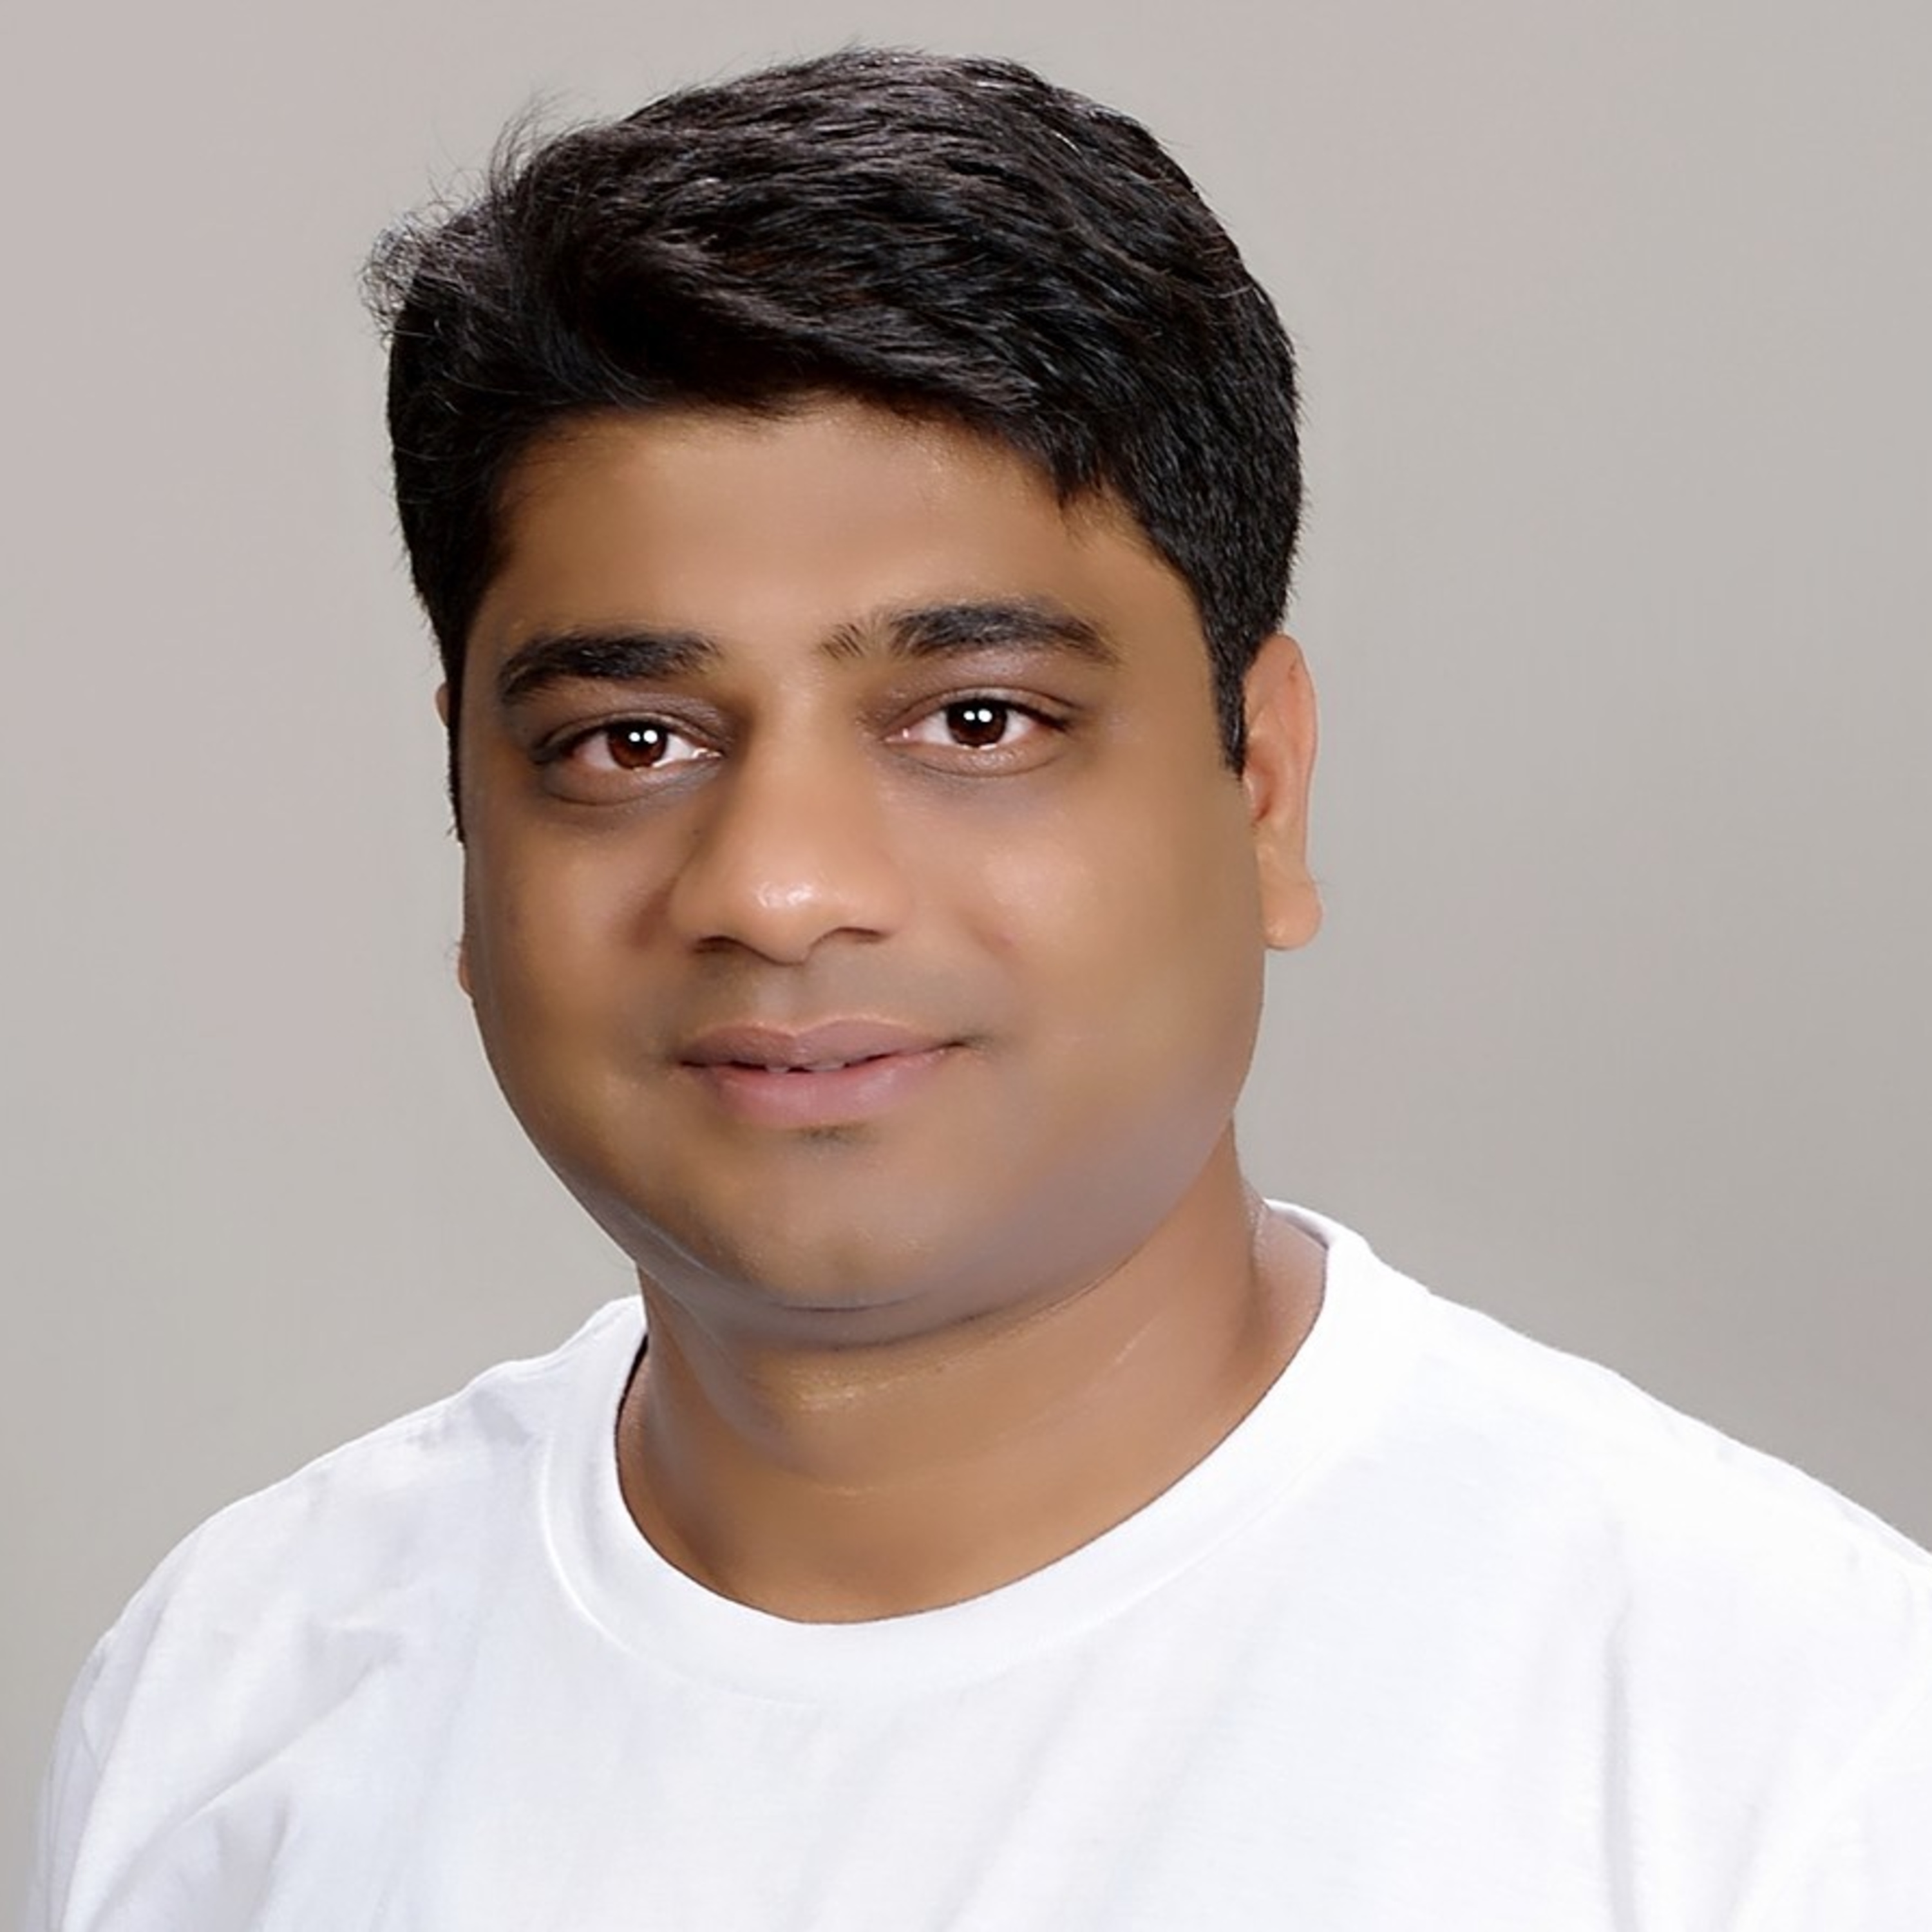 Vaibhav Gupta, Founder and CEO of Voix AI (Voix.AI)